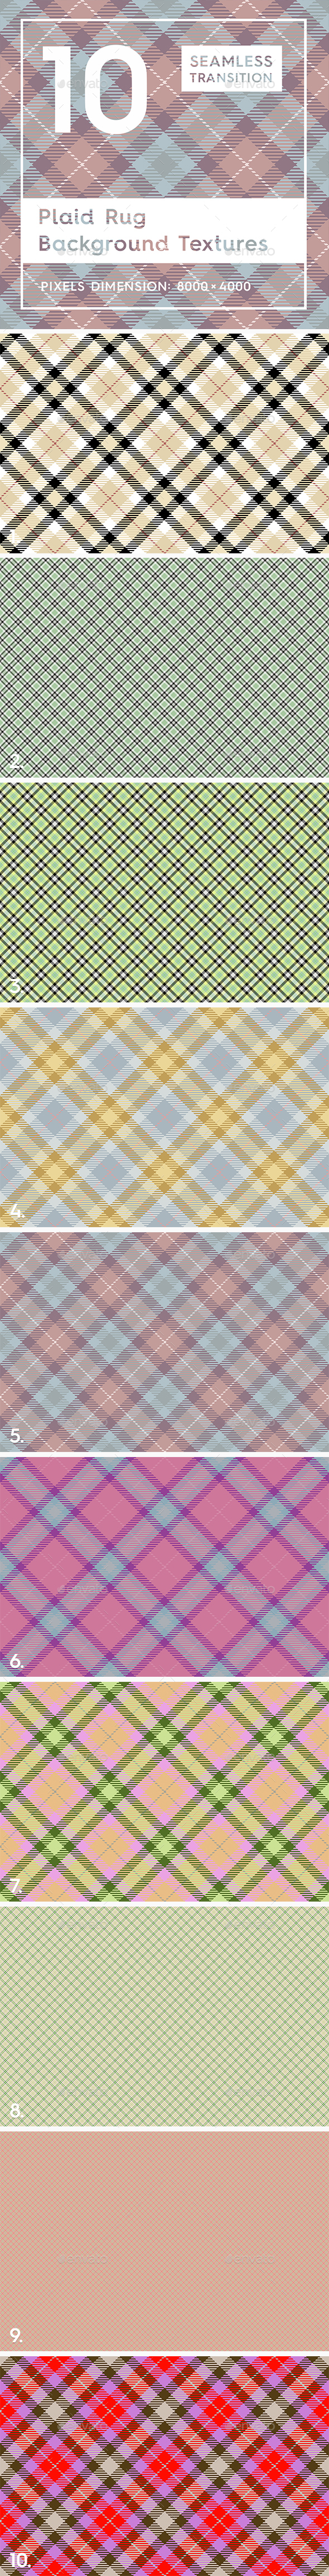 10 Plaid Rug Background Textures - Patterns Backgrounds